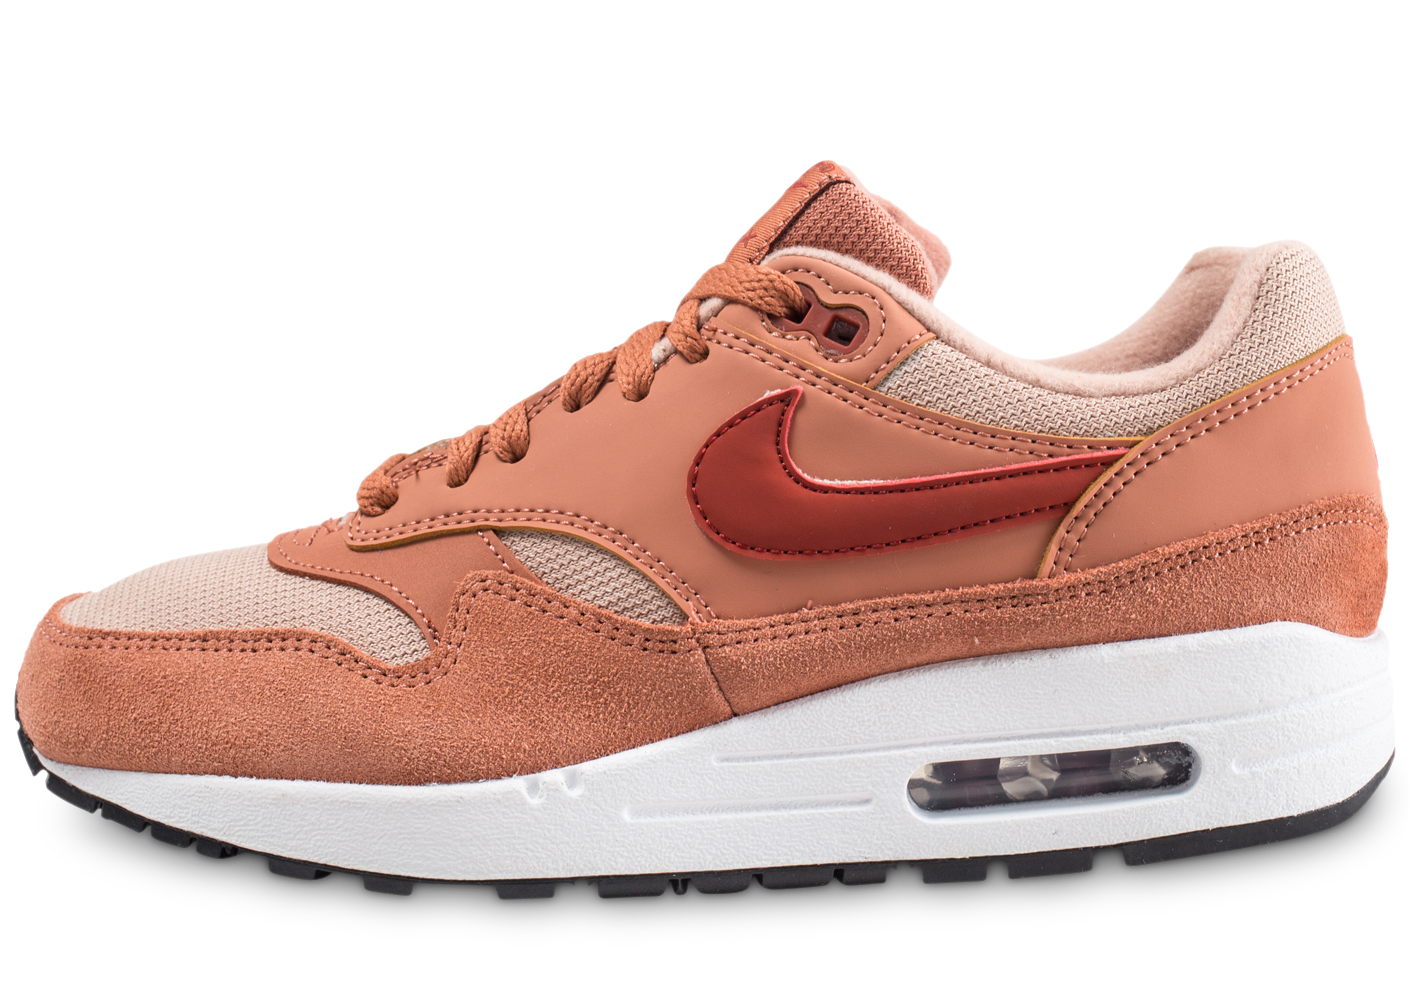 new arrival a3f82 d1690 Nike air max 1 beige femme baskets streetwear